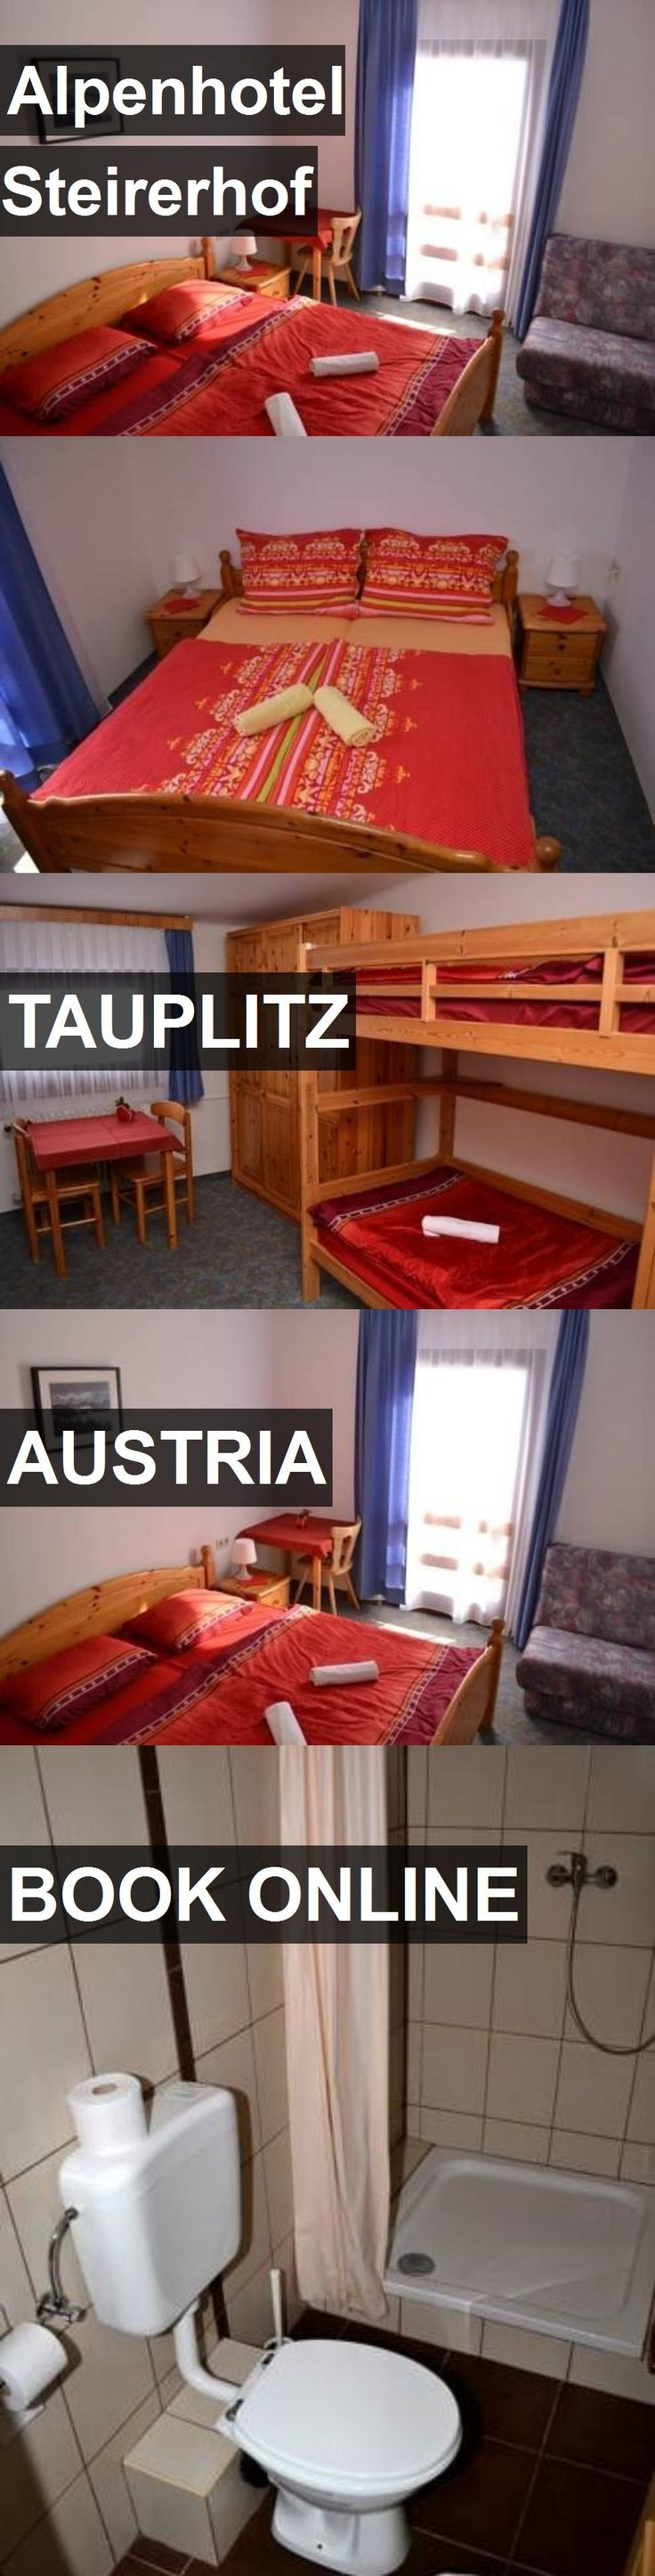 Alpenhotel Steirerhof in Tauplitz, Austria. For more information, photos, reviews and best prices please follow the link. #Austria #Tauplitz #travel #vacation #hotel